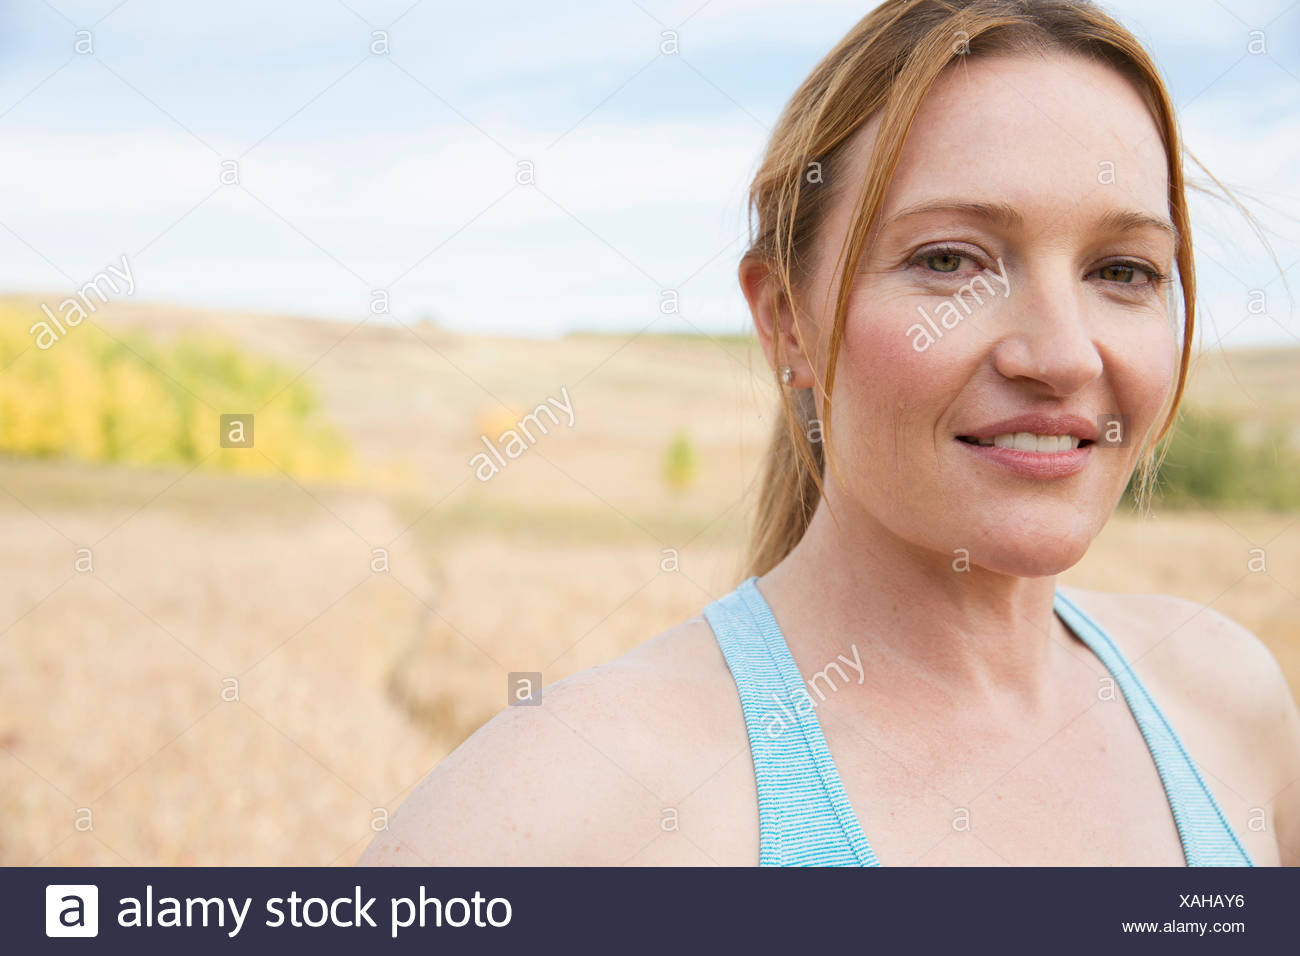 Pretty redhead looking serious after outdoor workout. - Stock Image